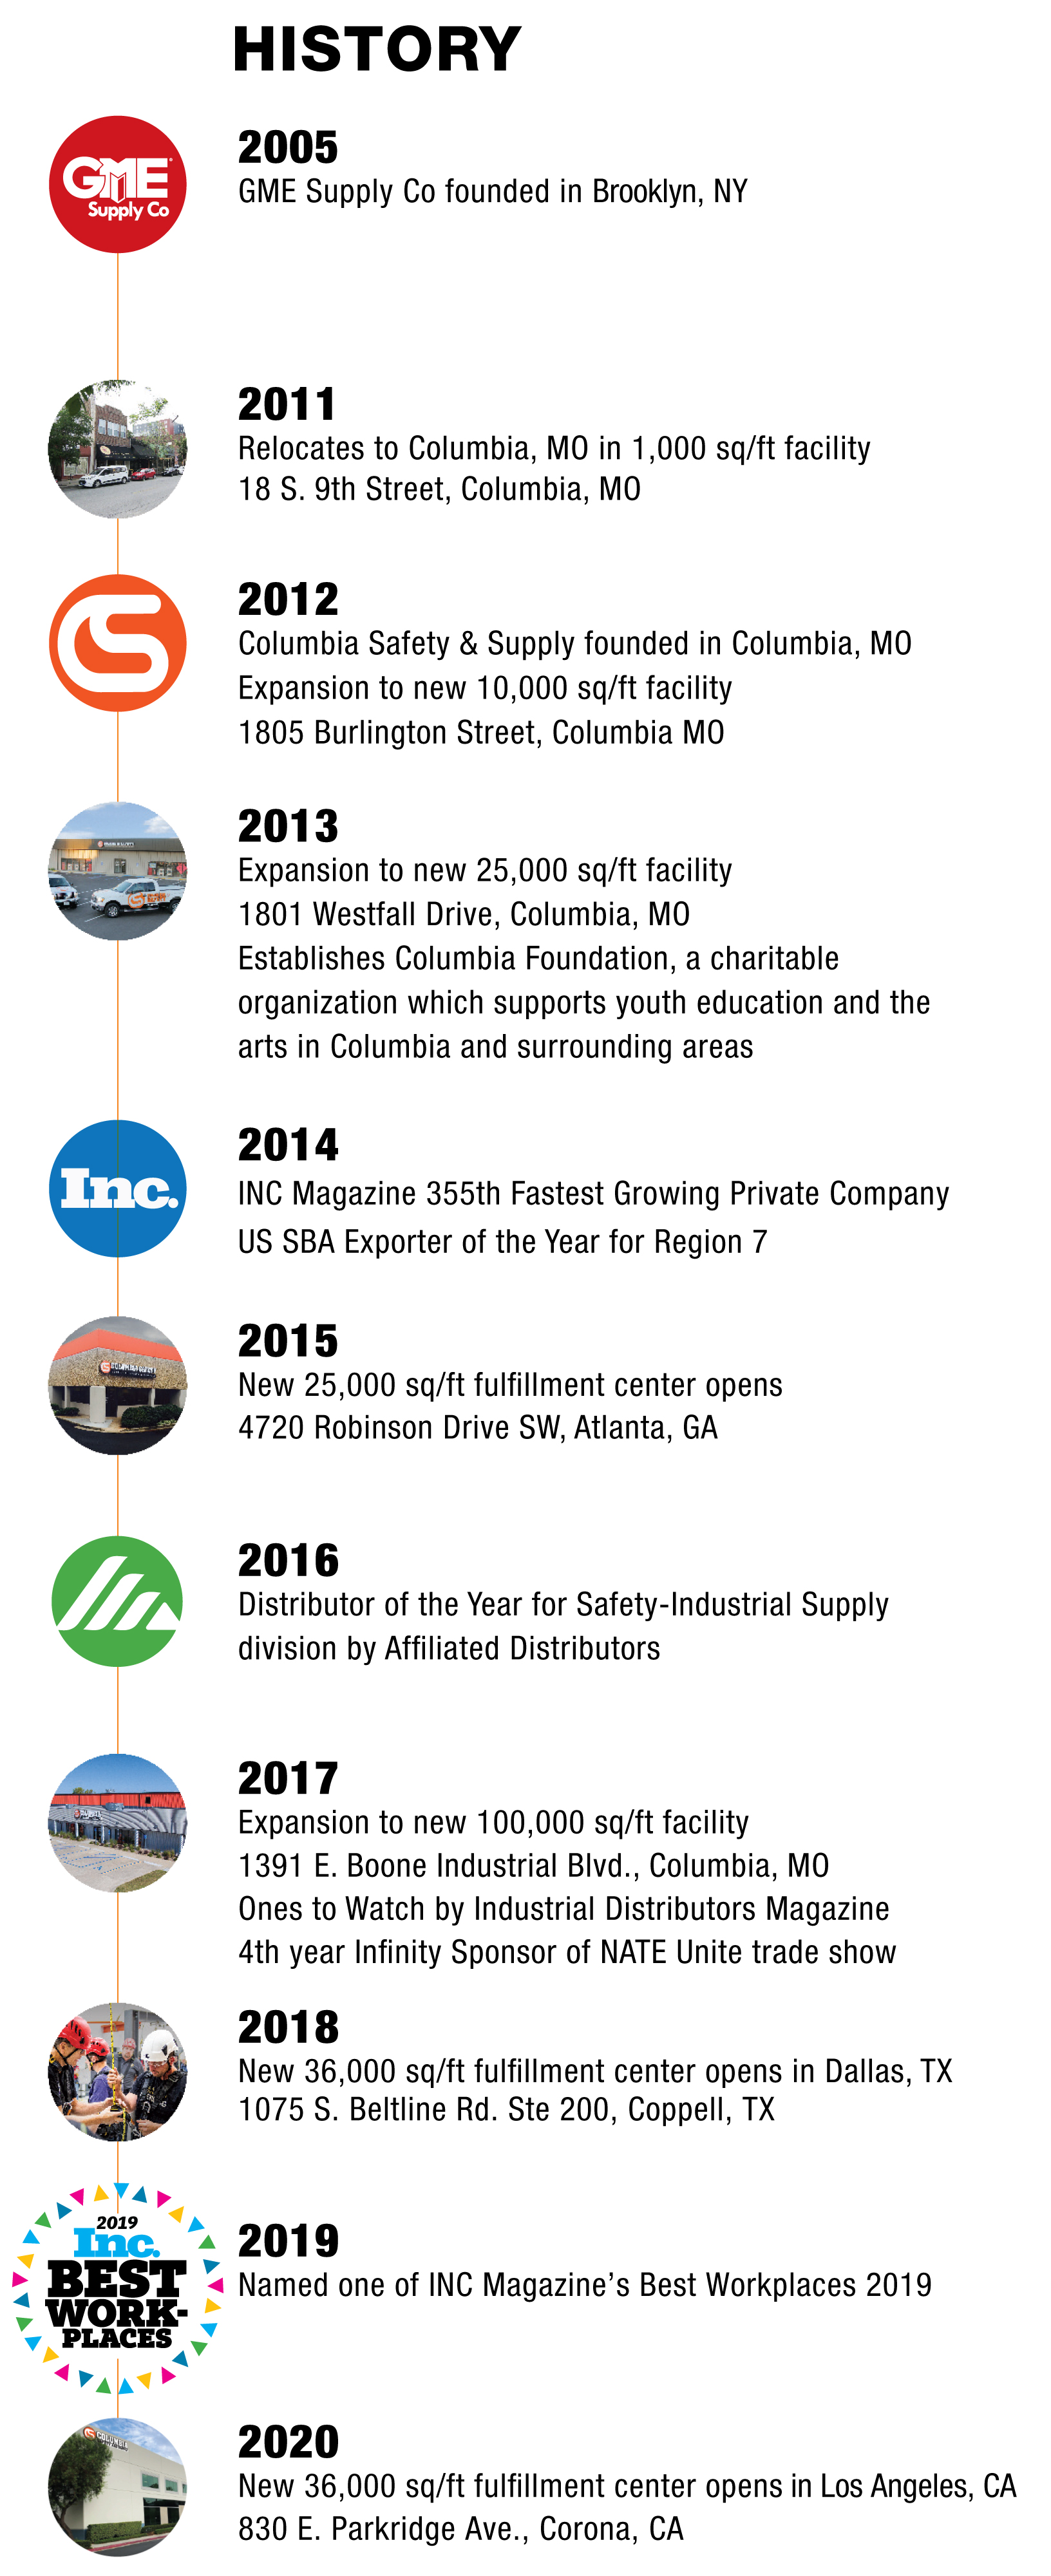 a historical timeline of Columbia Safety and Supply's growth